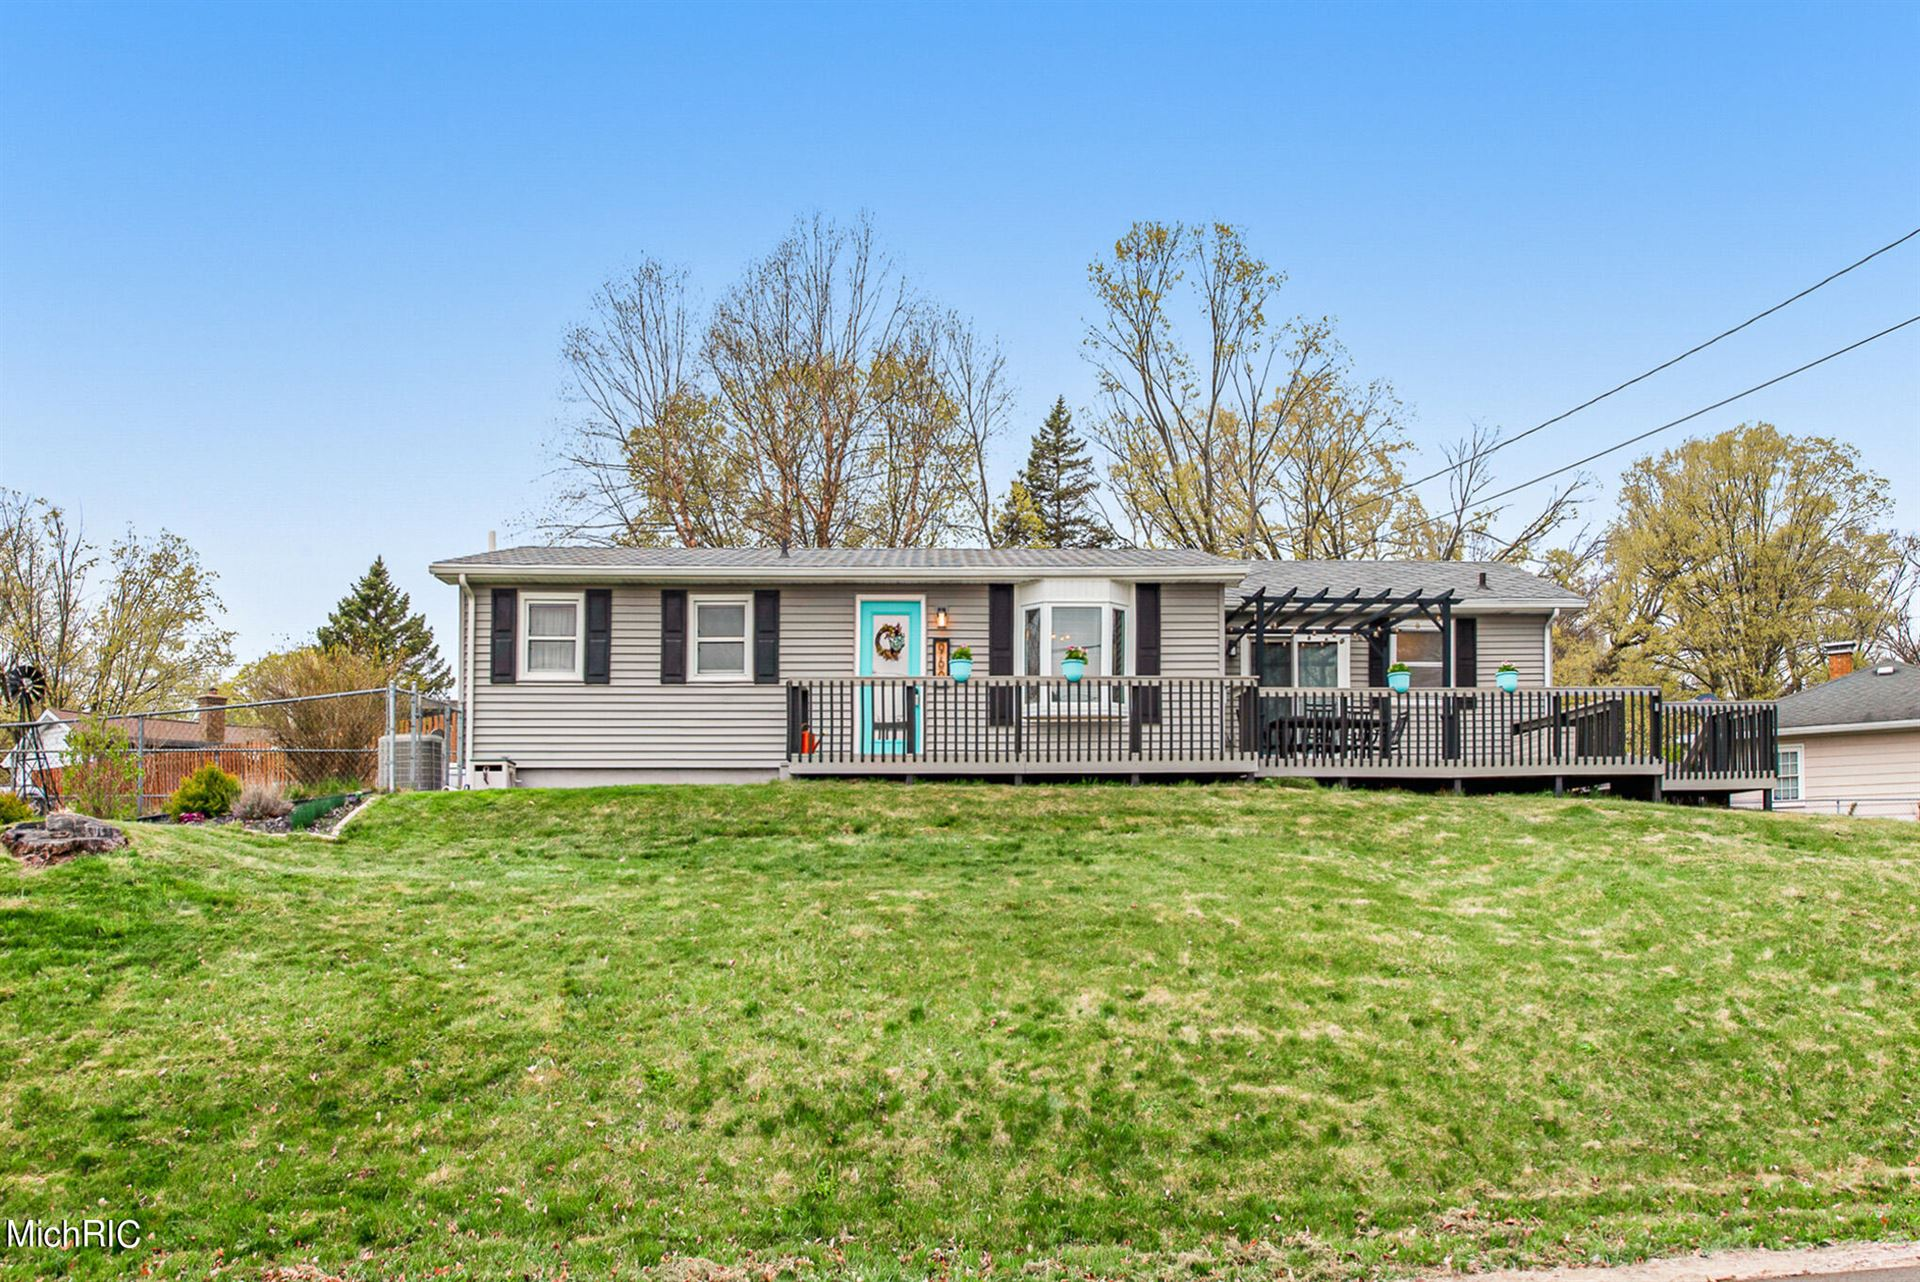 960 Belton Avenue, Battle Creek, MI 49014 - MLS#: 21012616